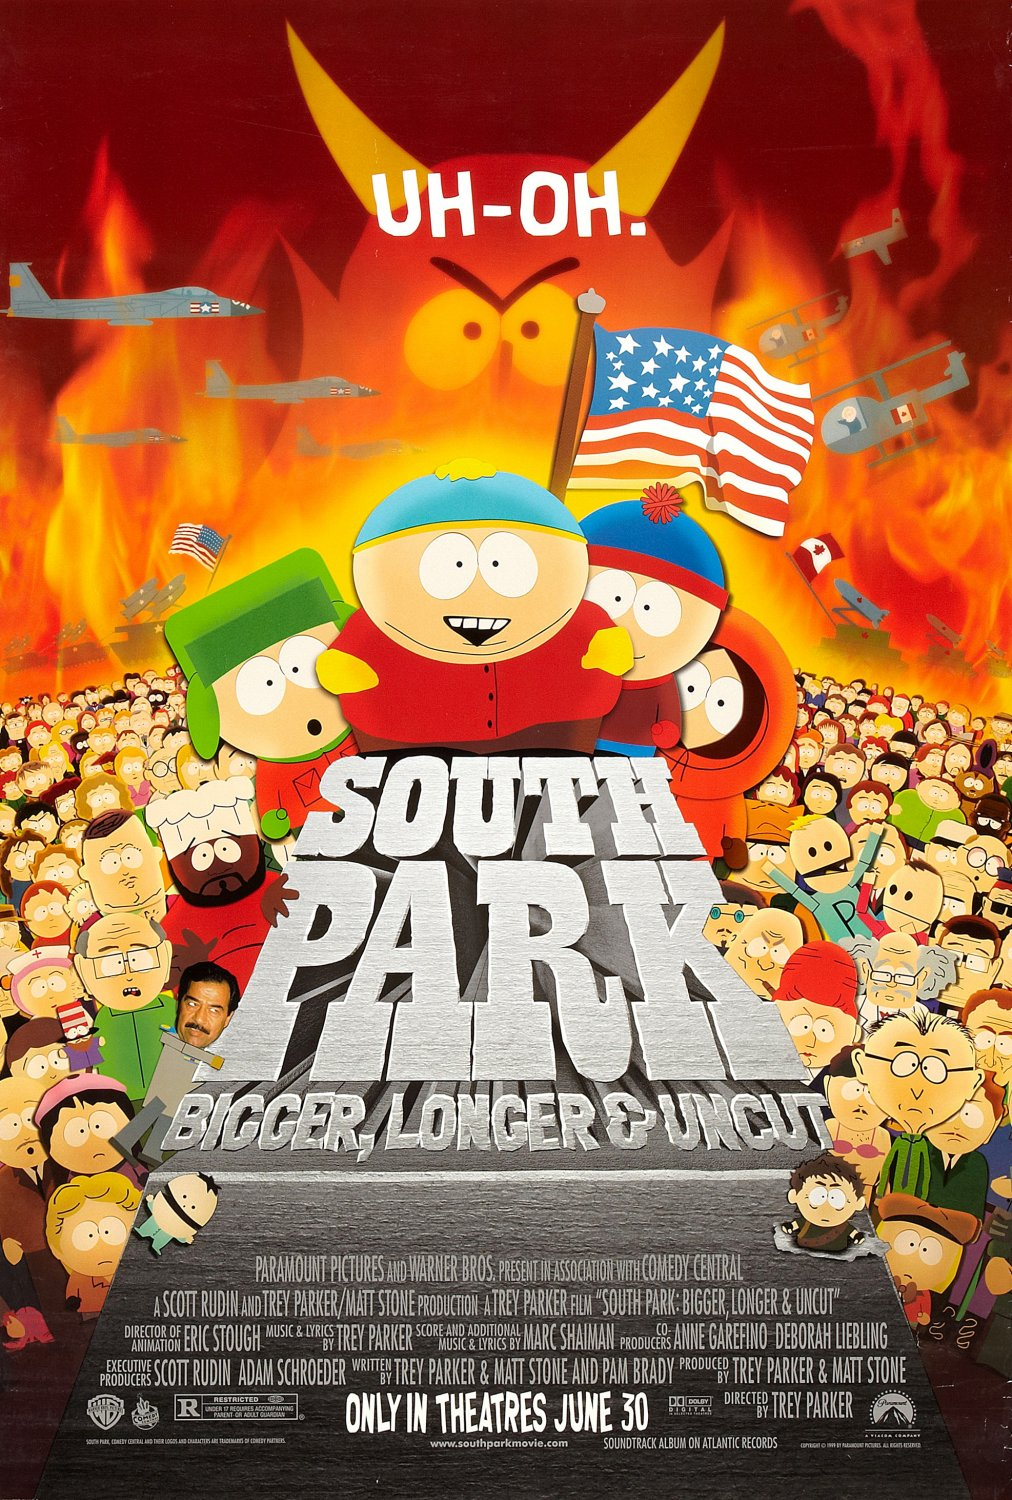 South Park Bigger Longer & Uncut